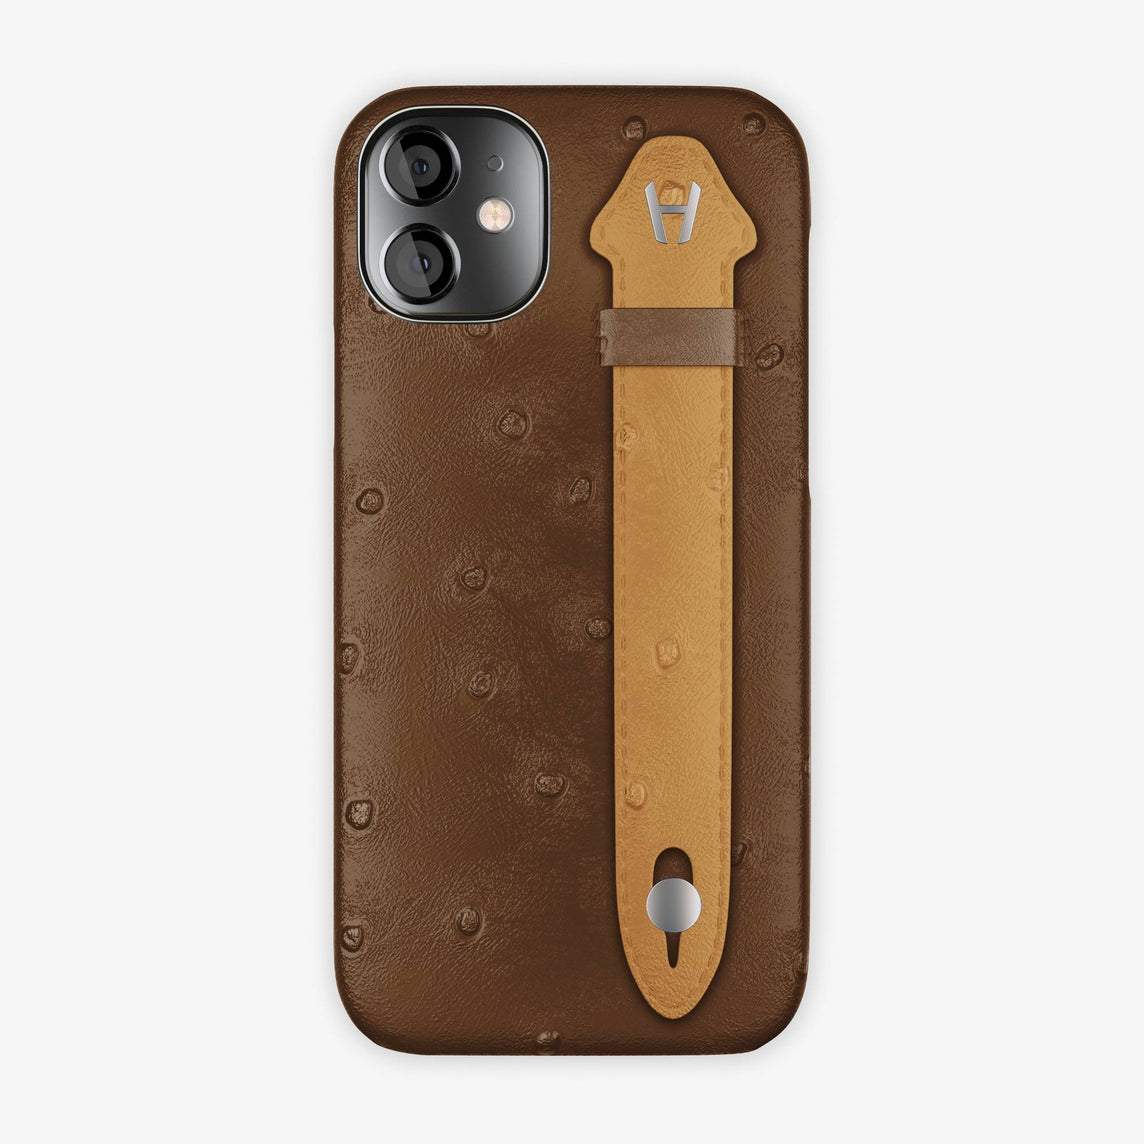 Ostrich Side Finger Case iPhone 12 Mini | Tobacco/Chestnut - Stainless Steel